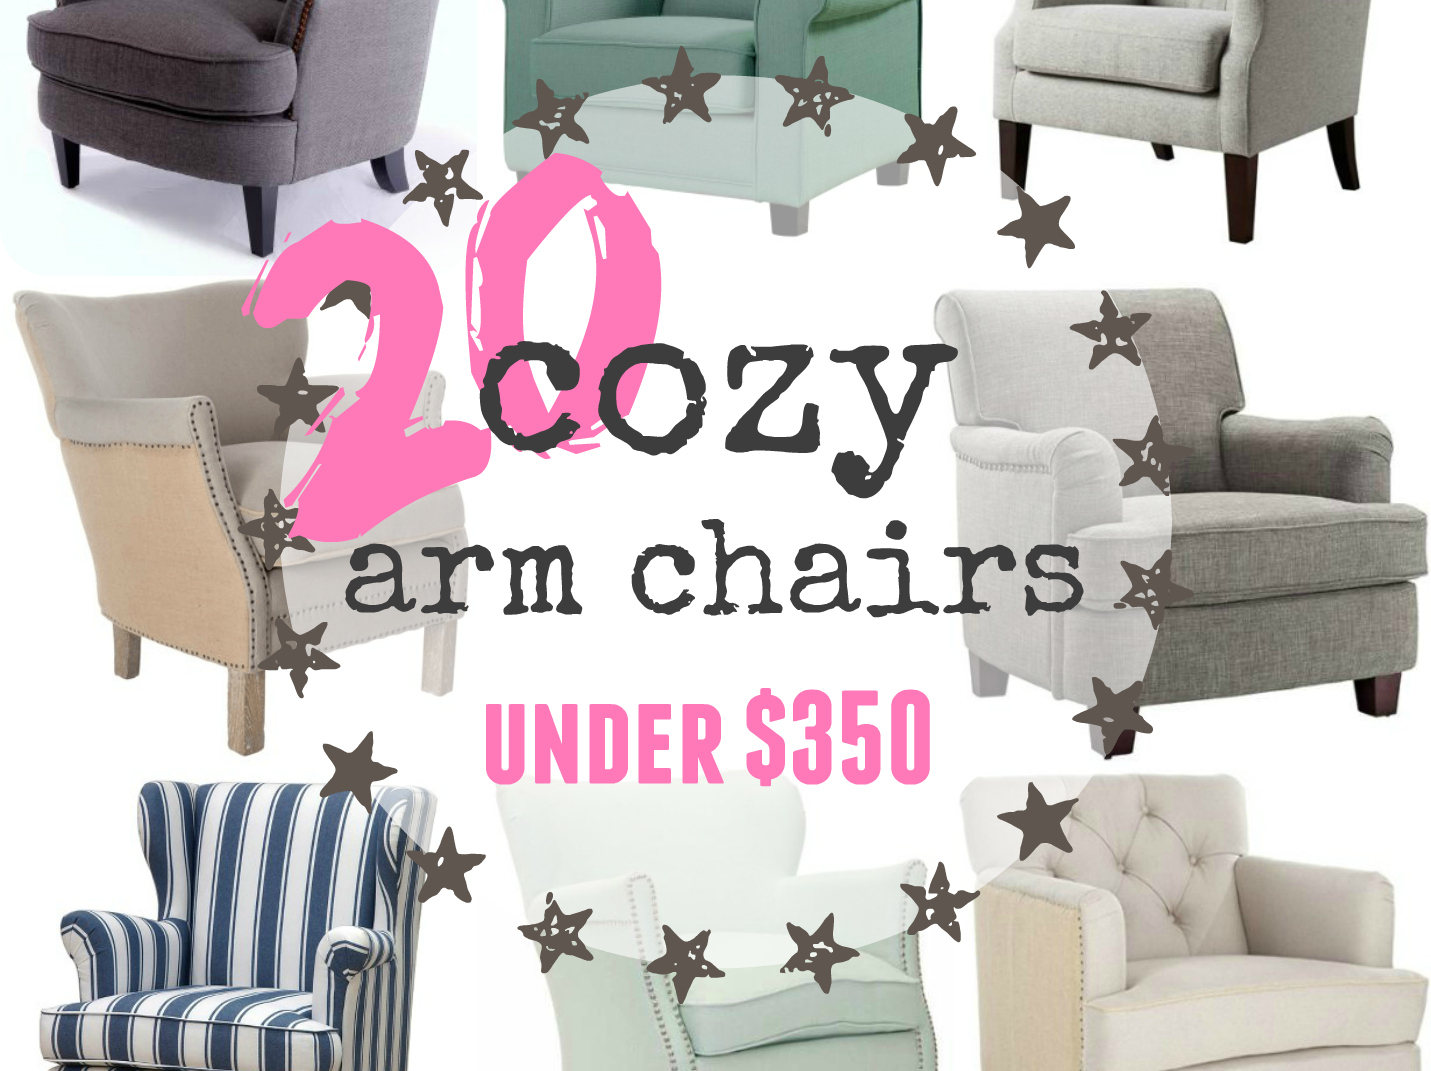 20 cozy arm chairs under $350